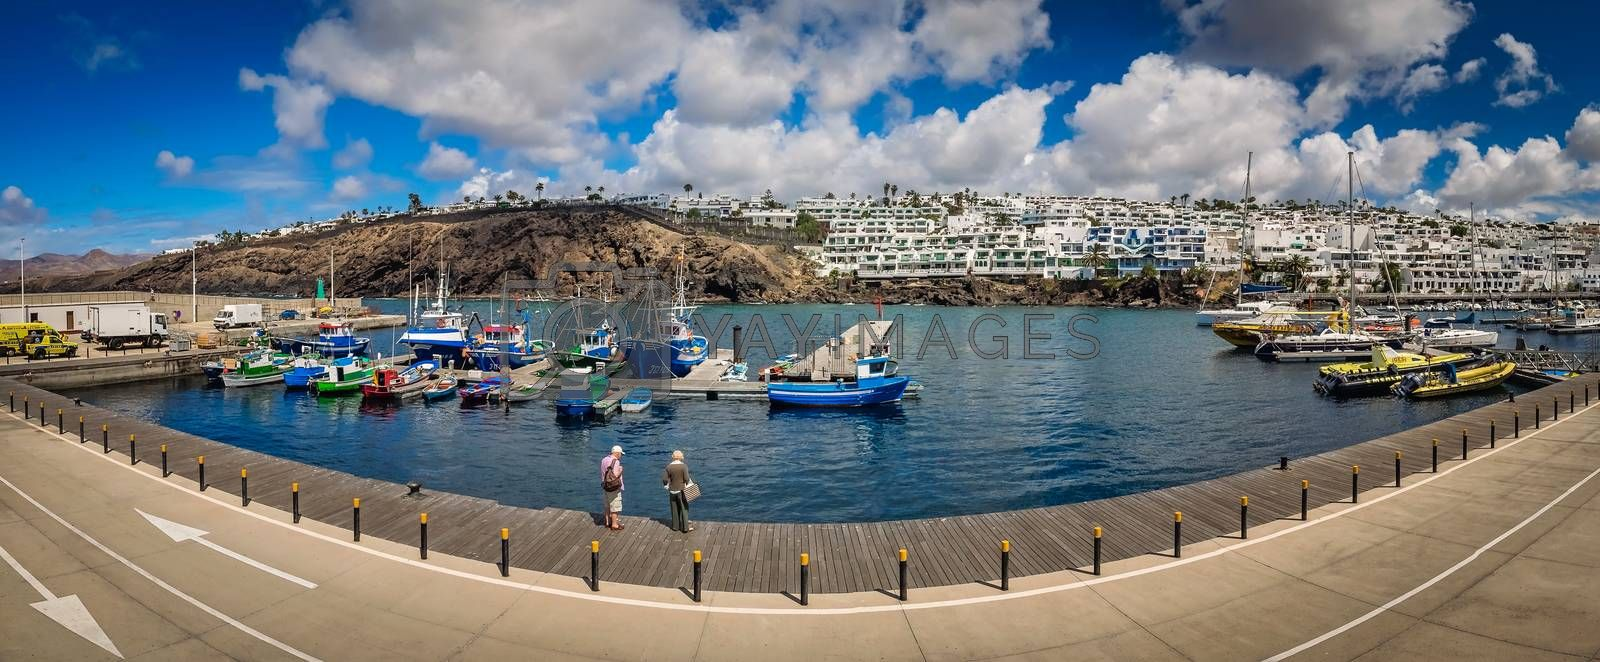 Royalty free image of Harbour in Puerto del Carmen by pawopa3336